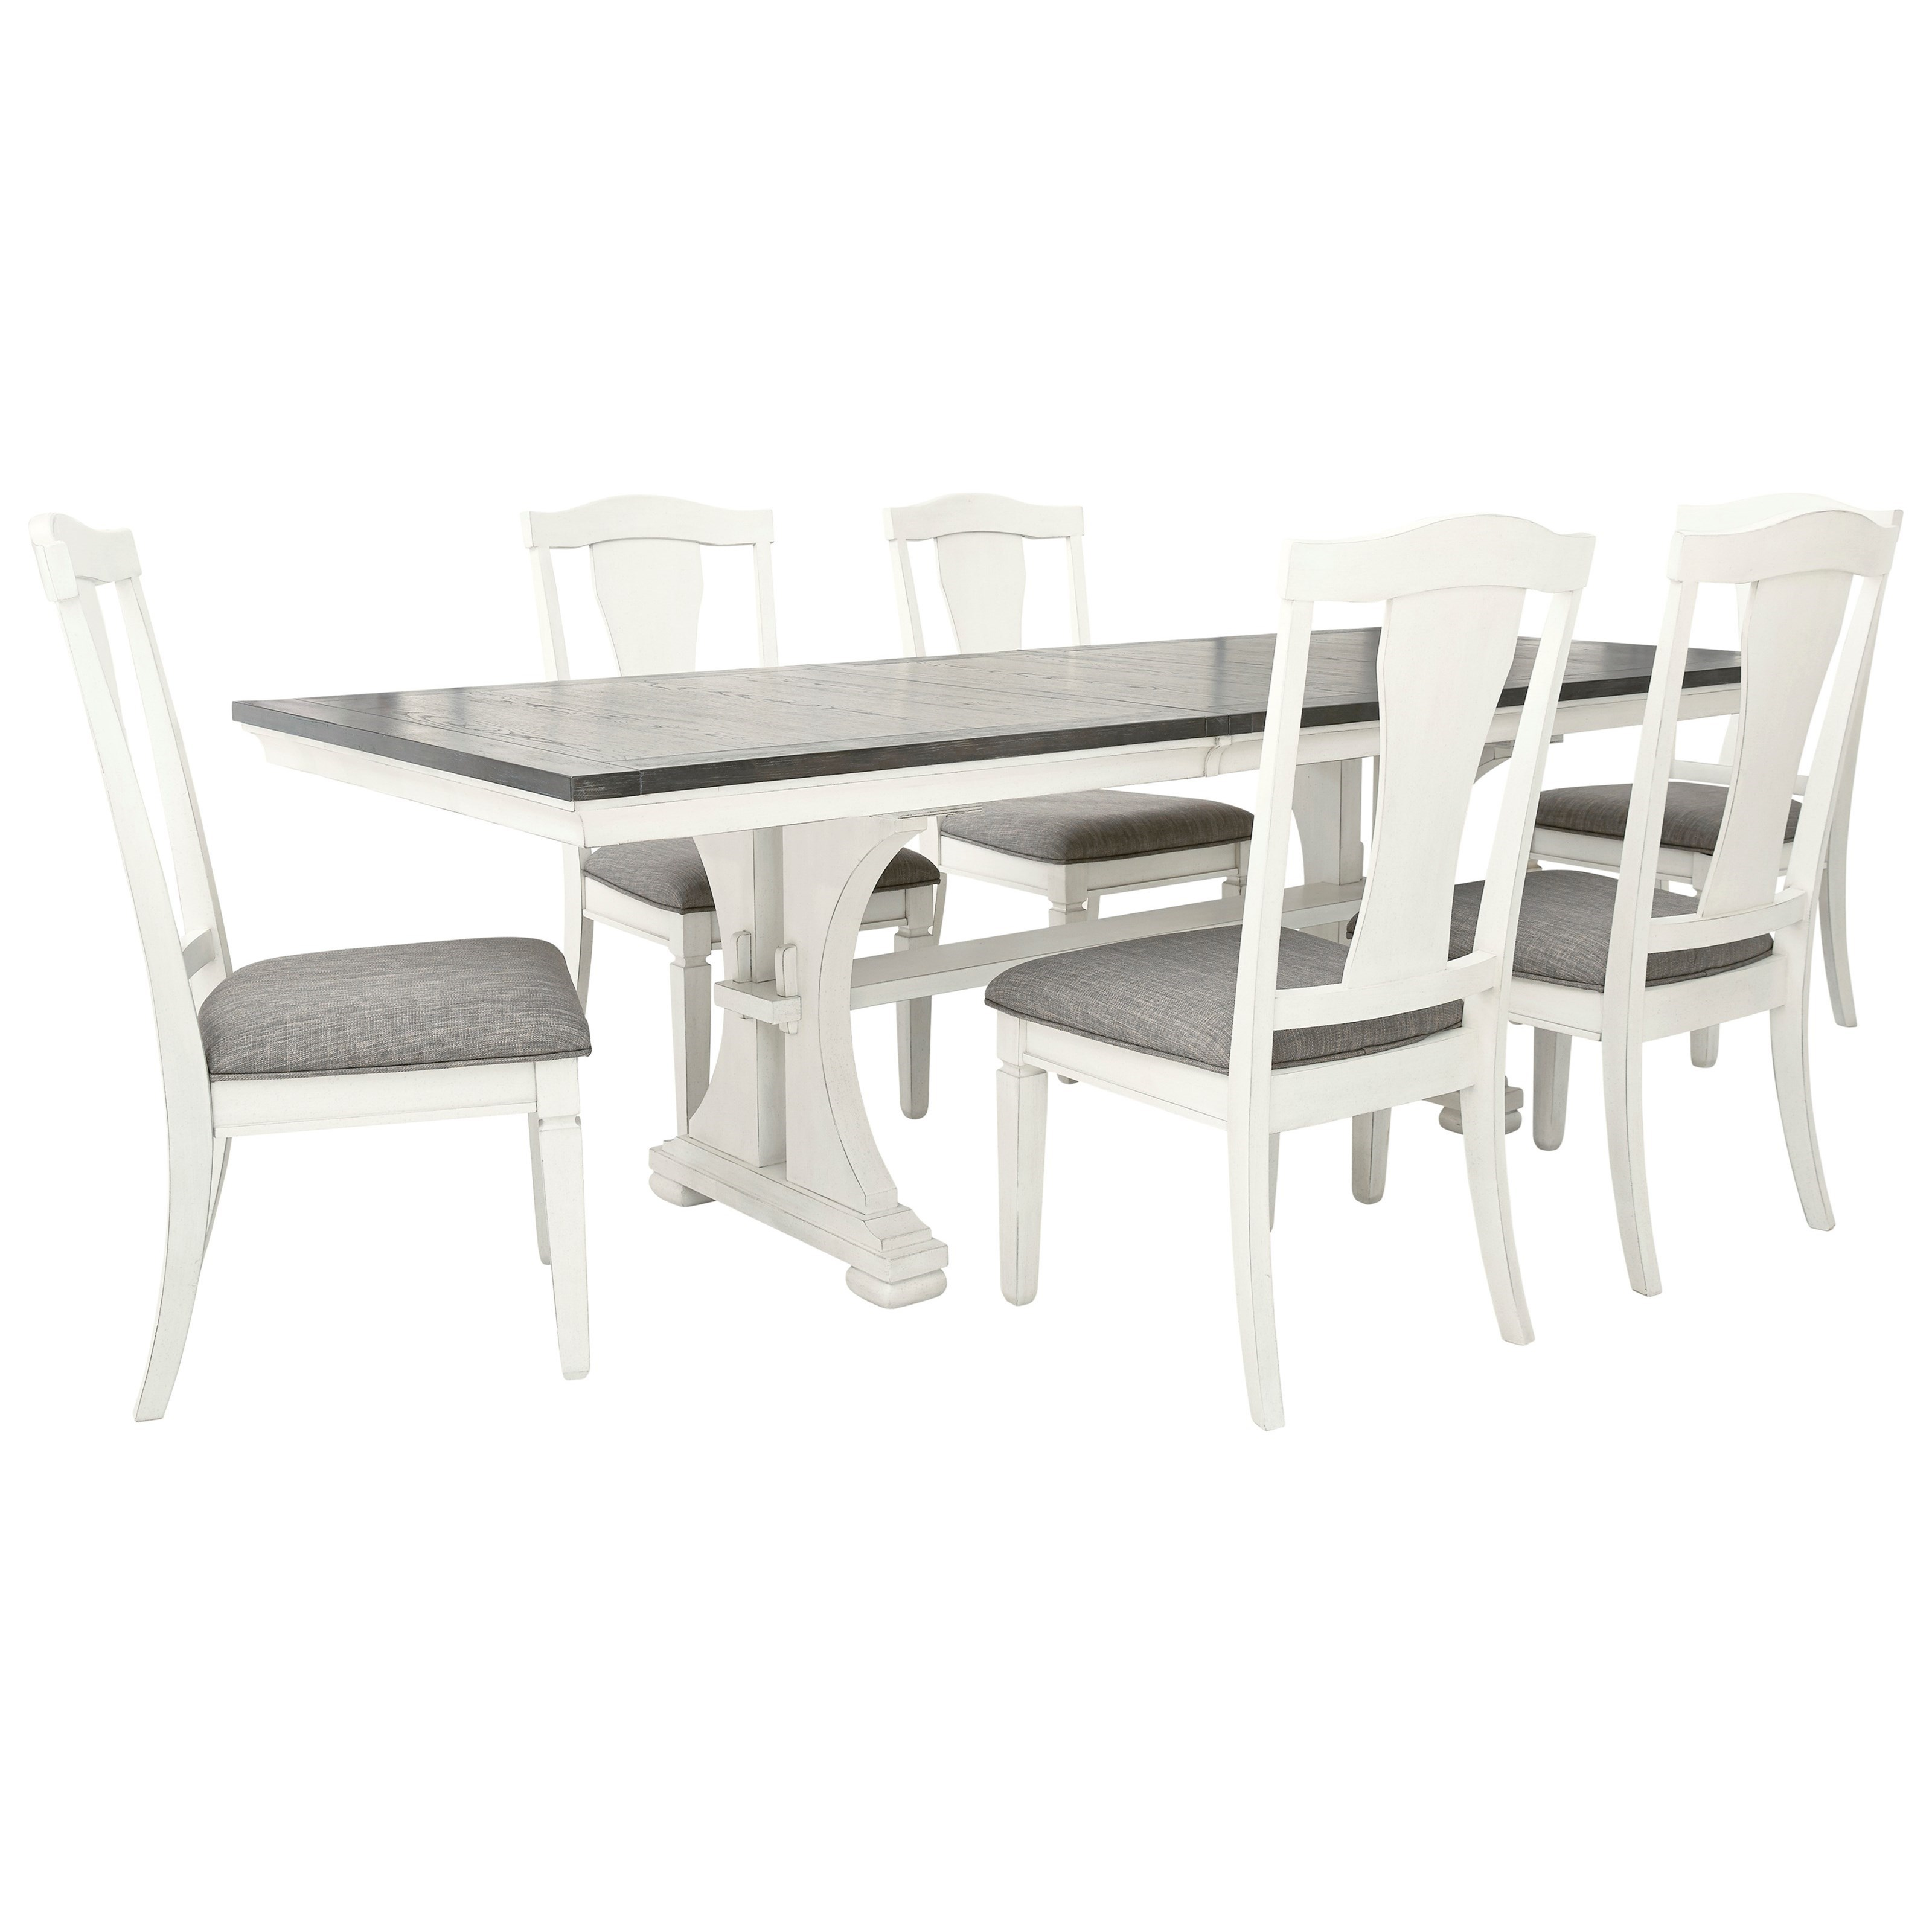 Nashbryn 7-Piece Dining Set by Benchcraft at Value City Furniture